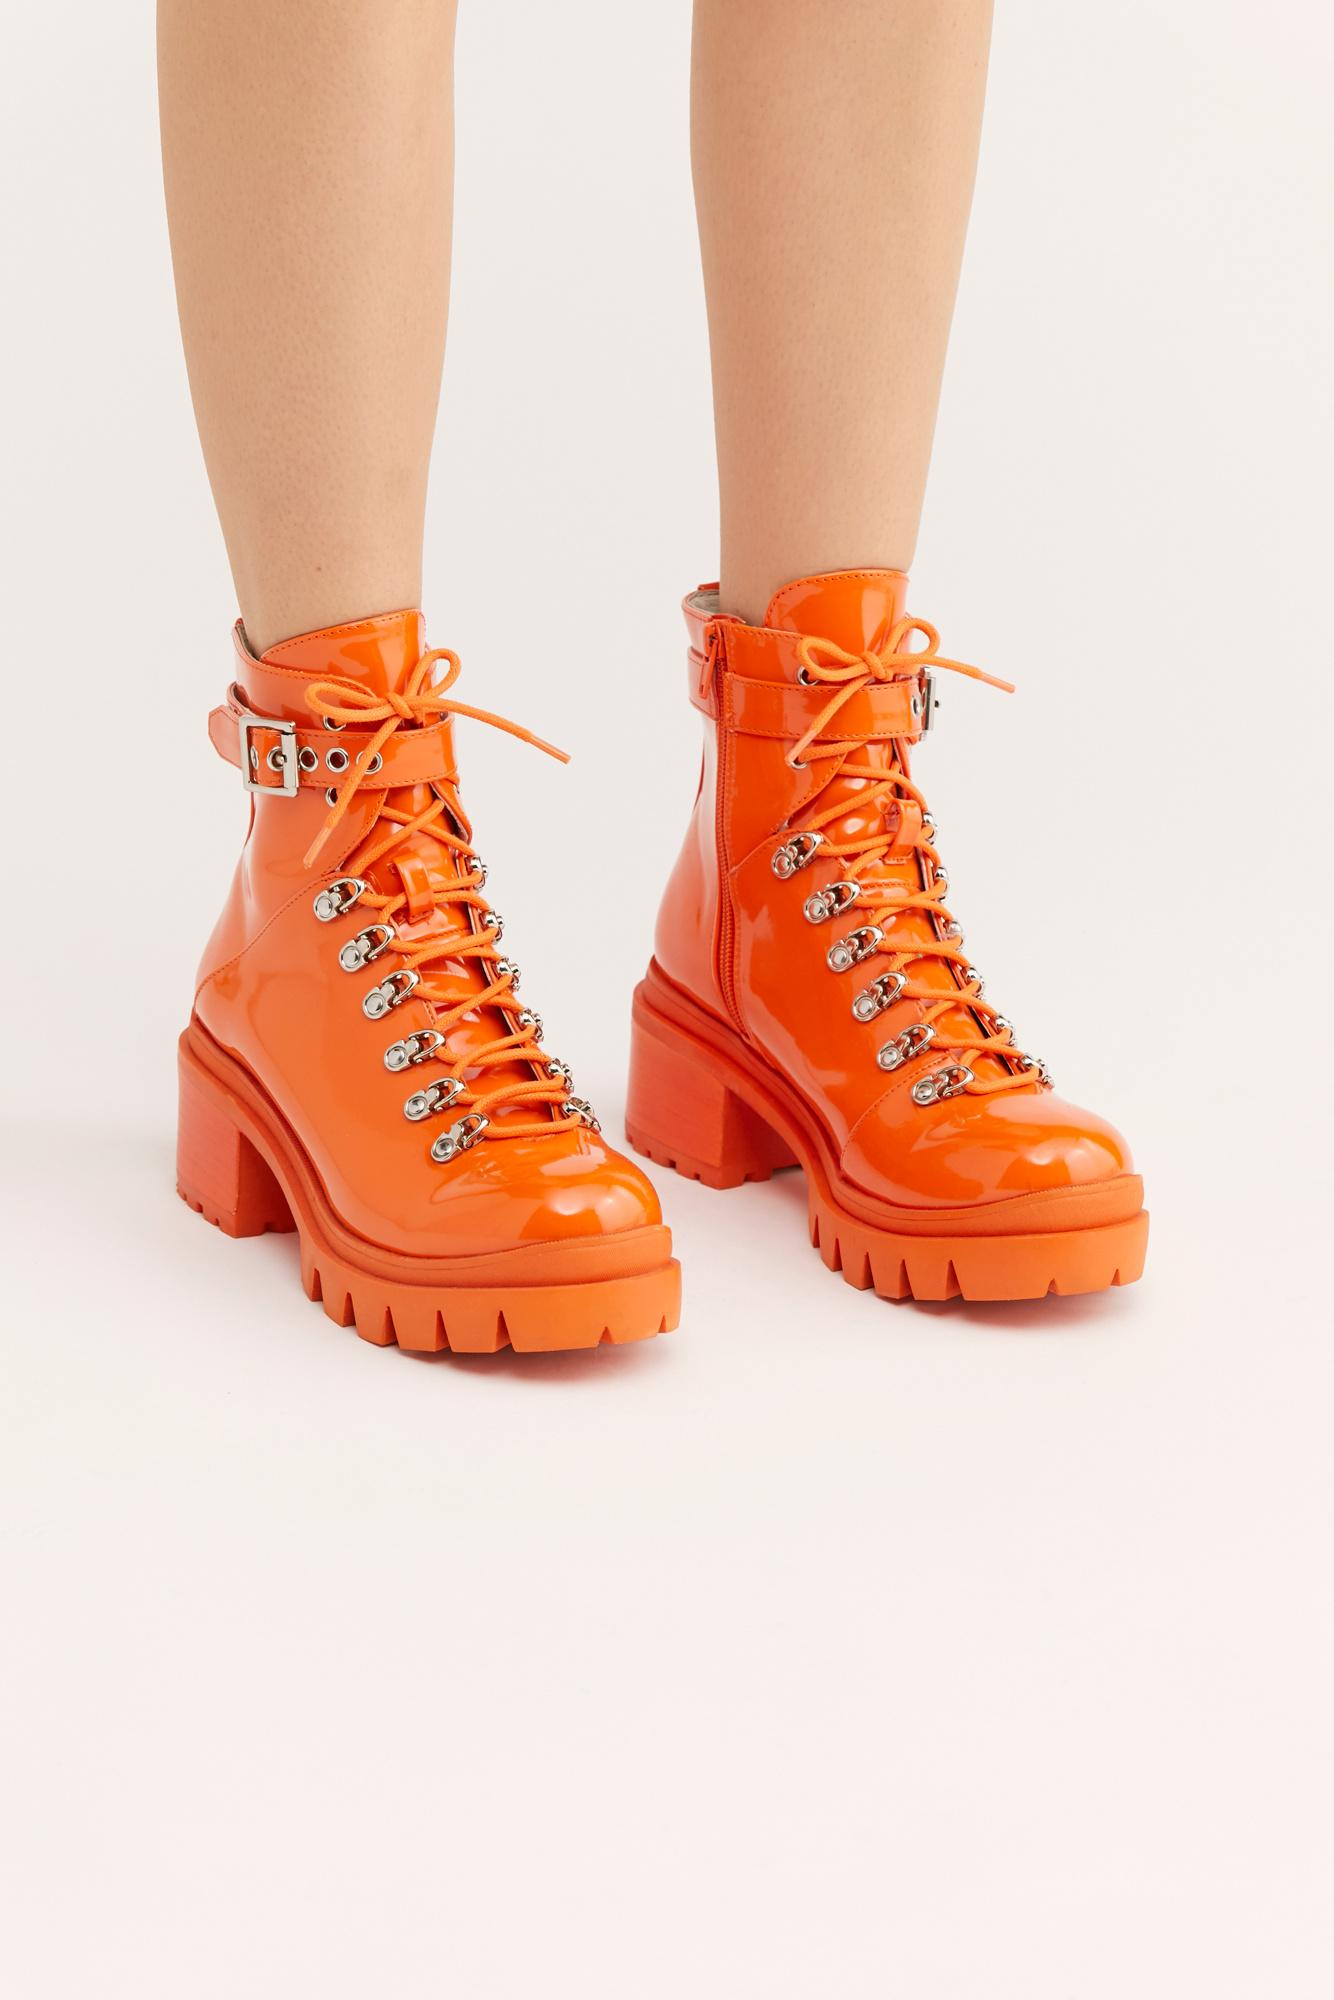 Check Lace-up Boot By Jeffrey Campbell